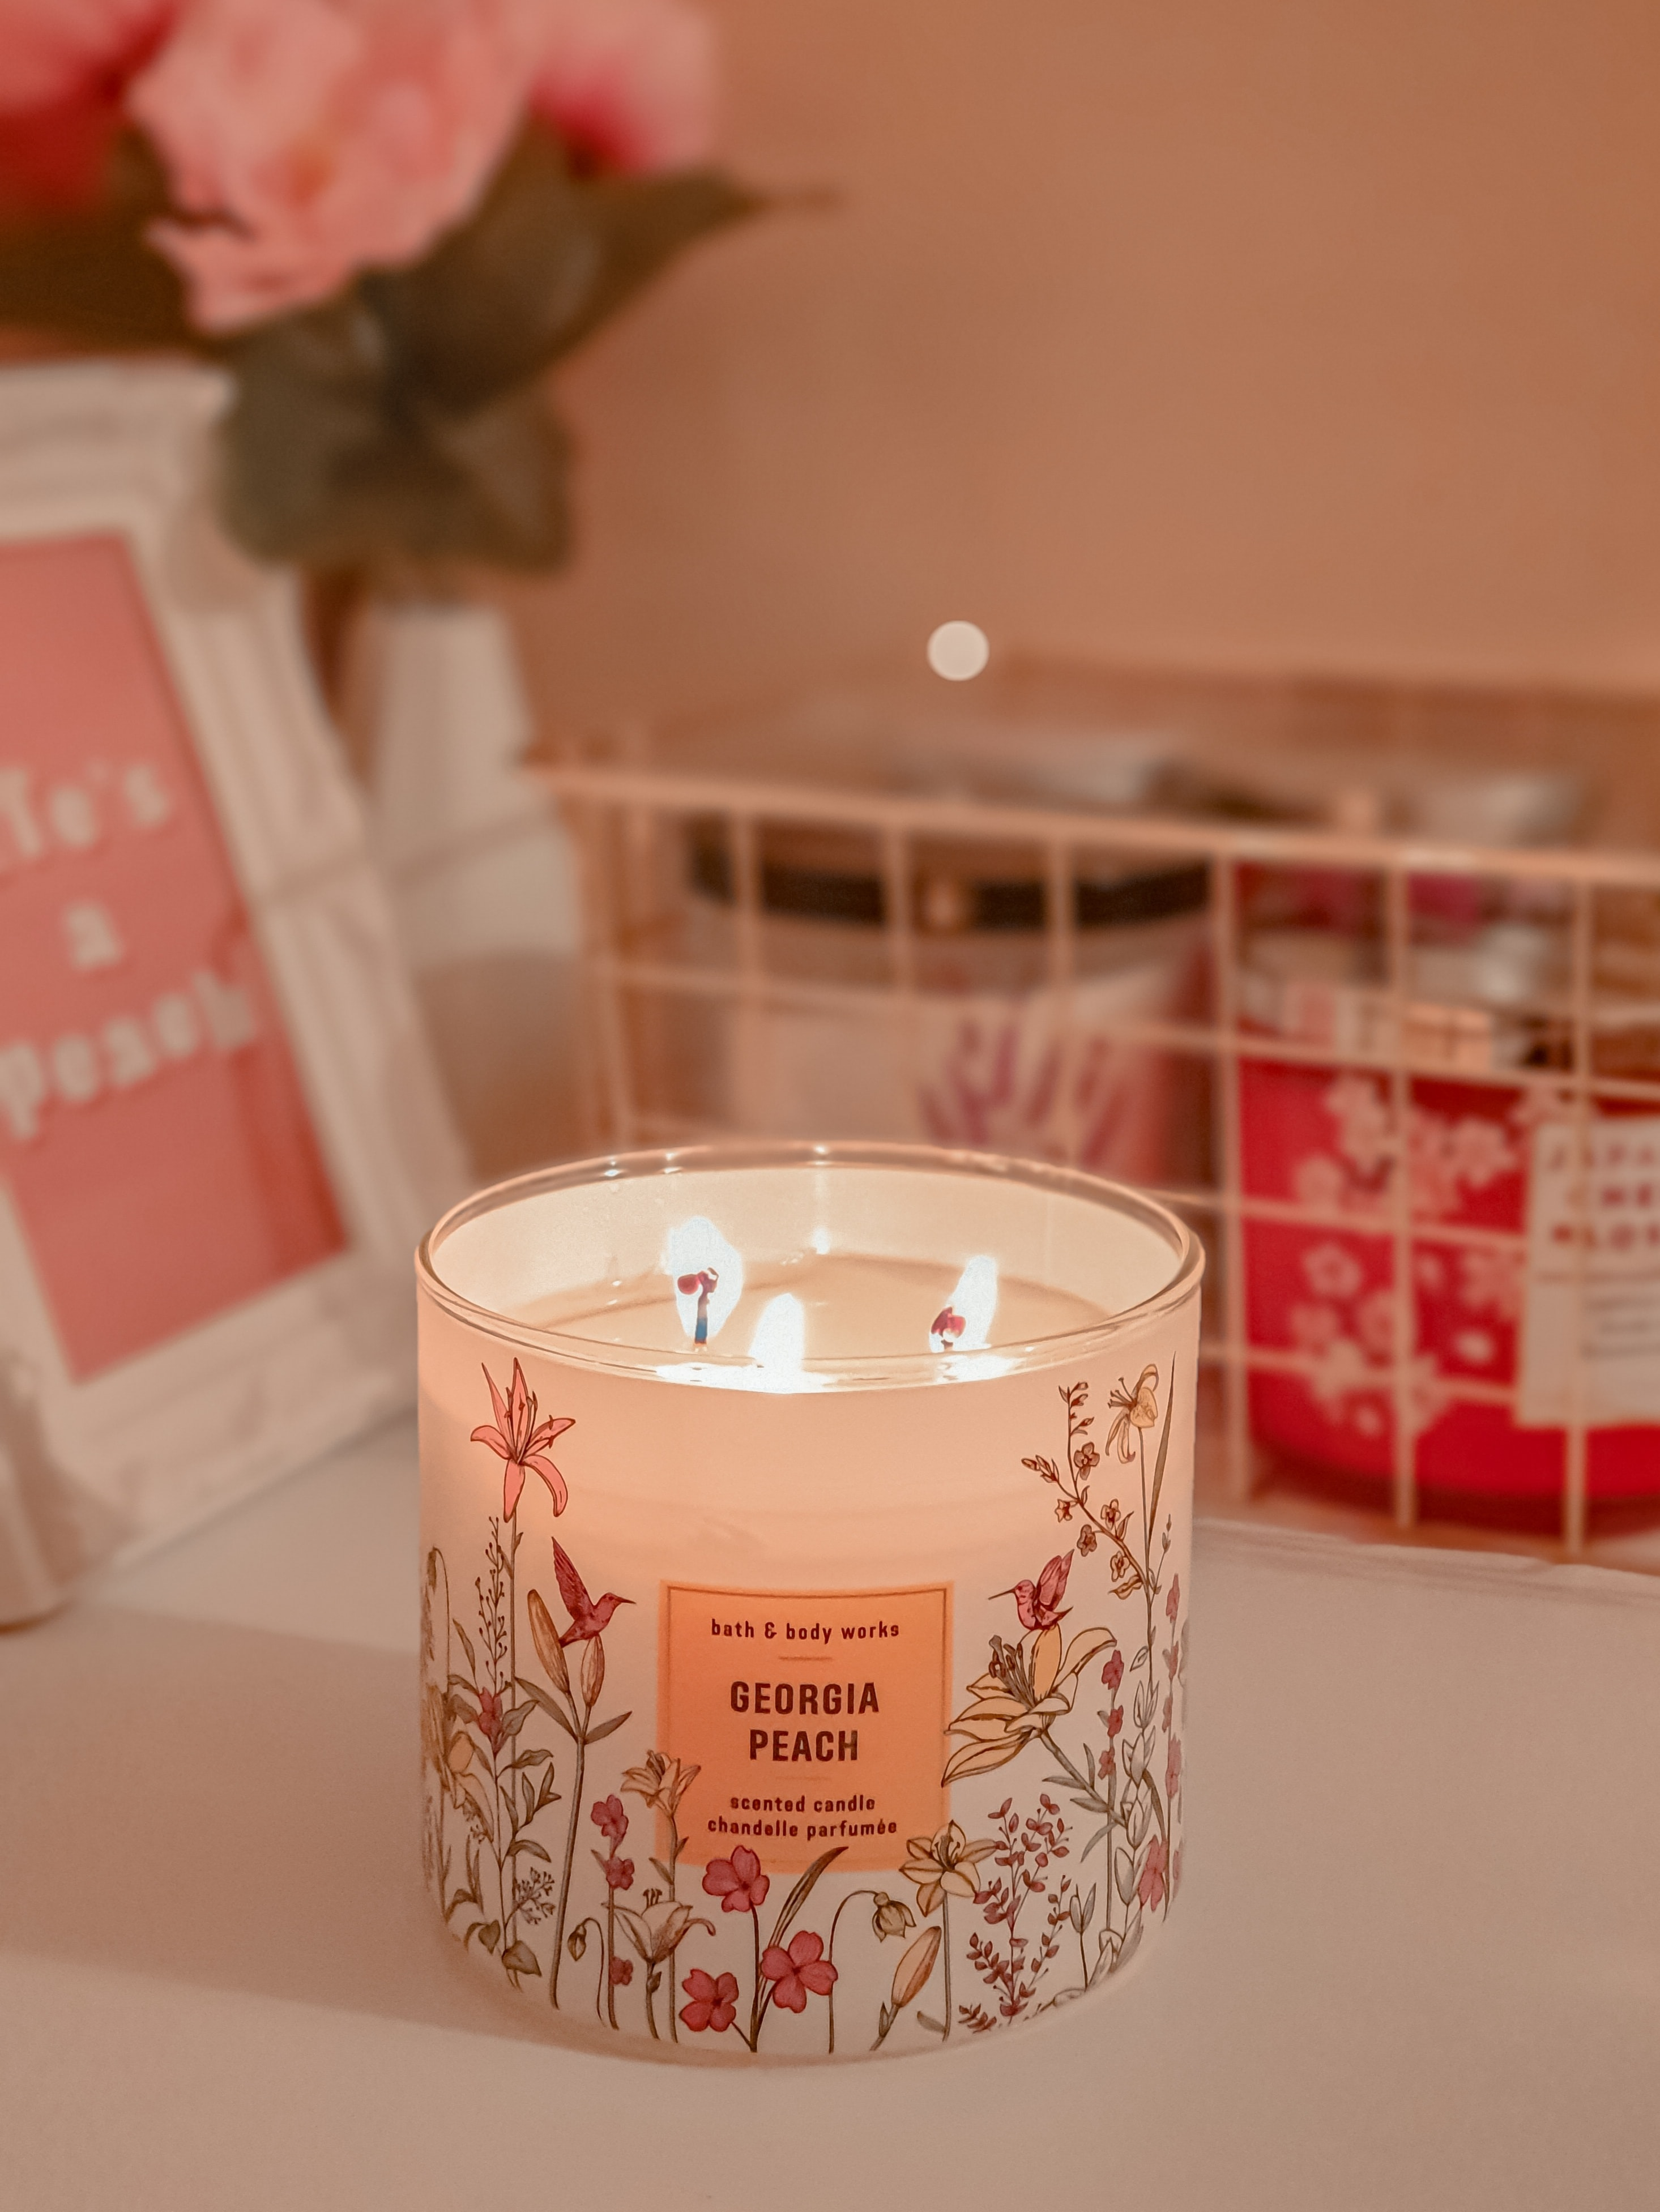 Scented Candle Pictures Download Free Images On Unsplash